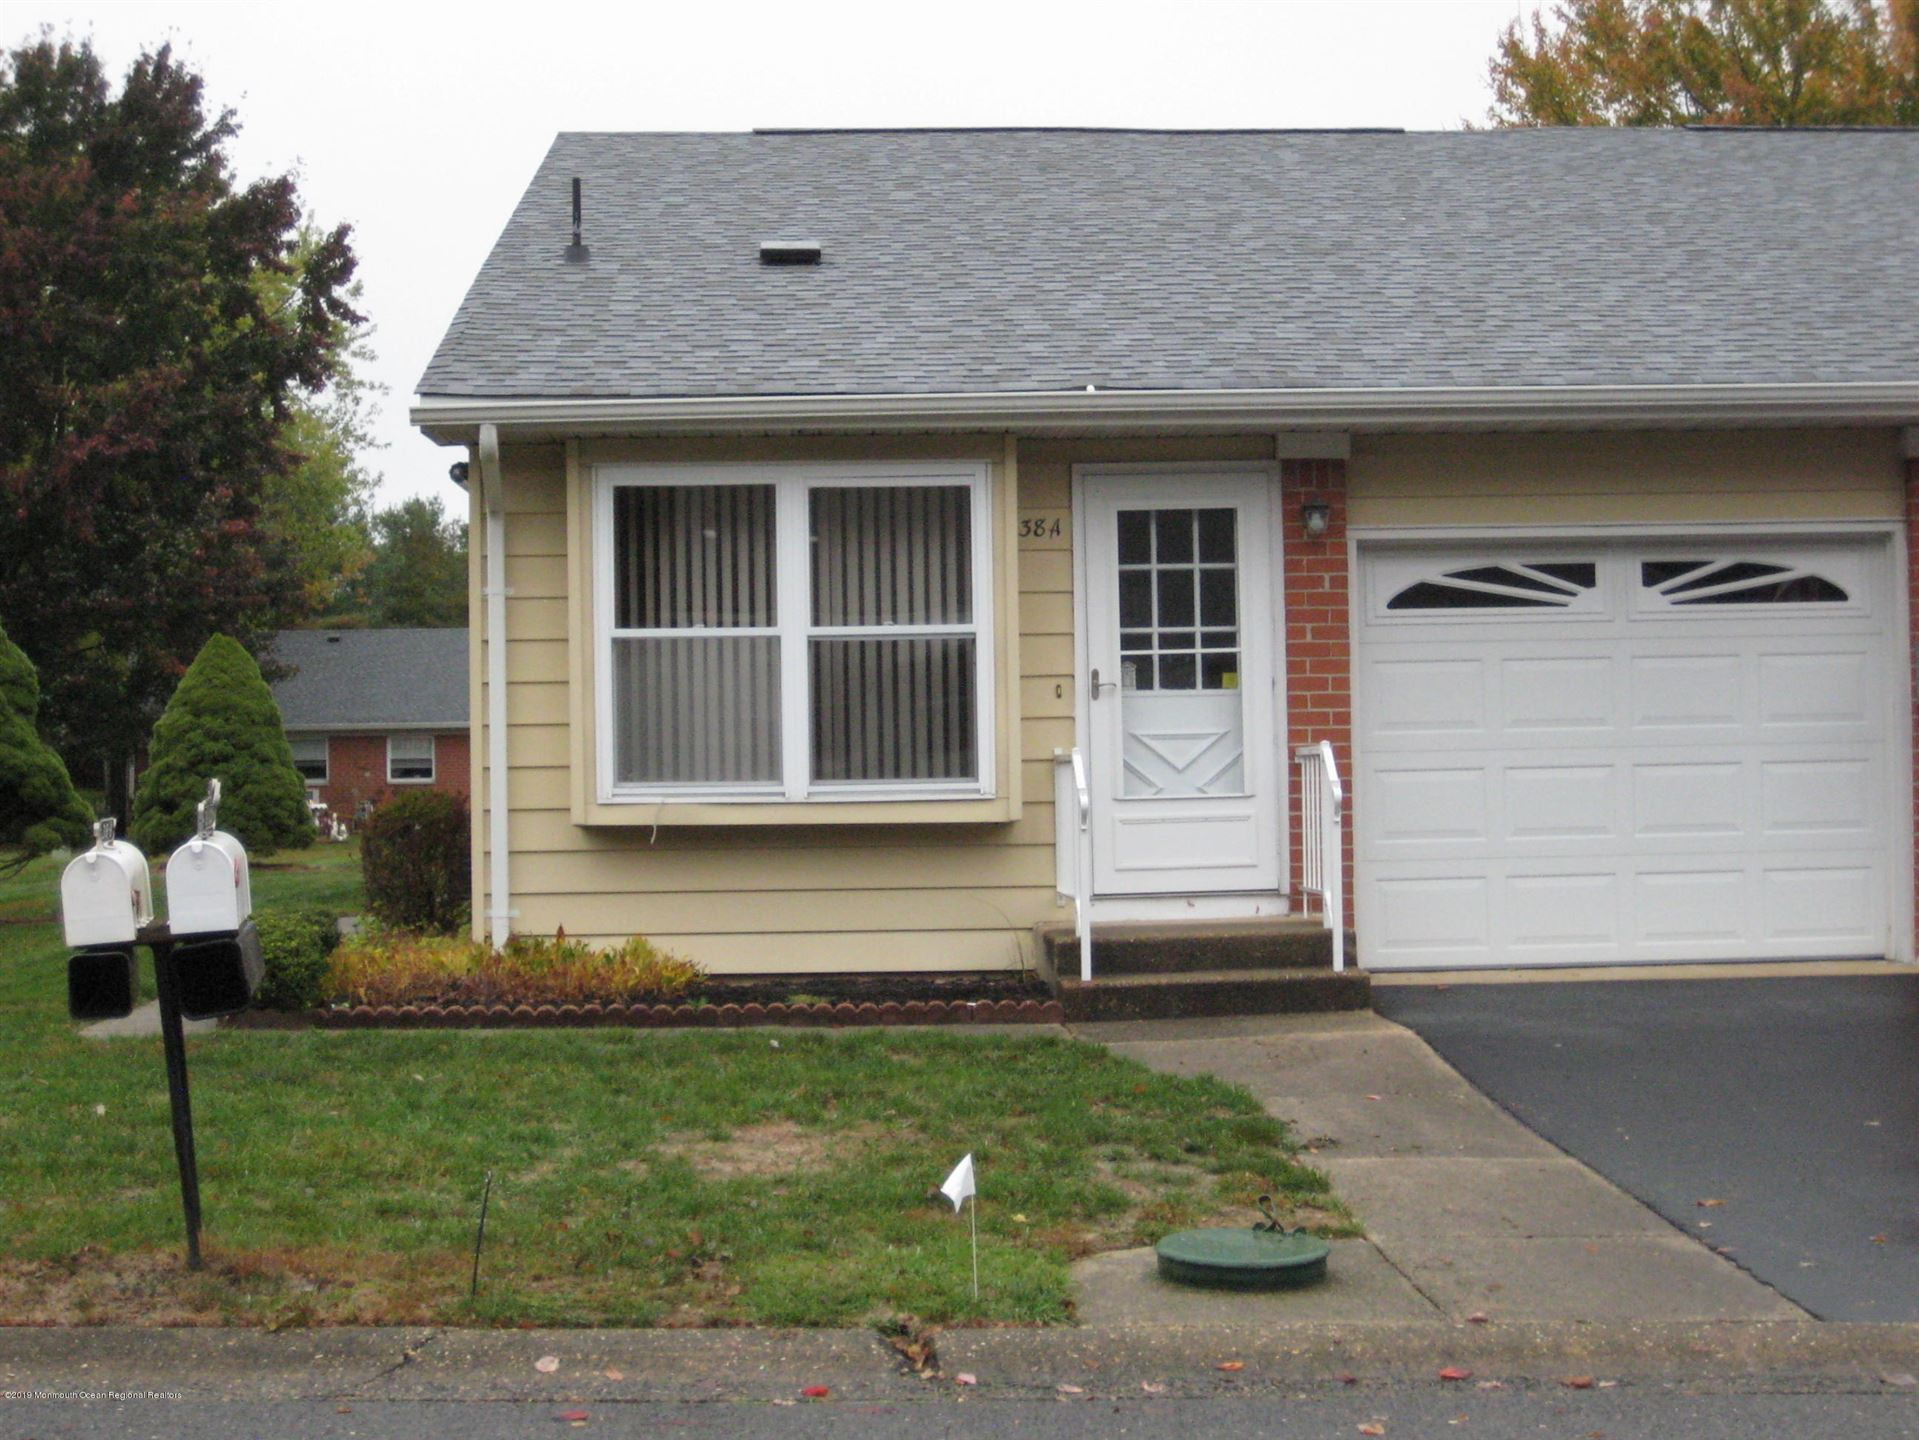 38 Monticello Drive #A, Whiting, NJ 08759 - #: 22014849